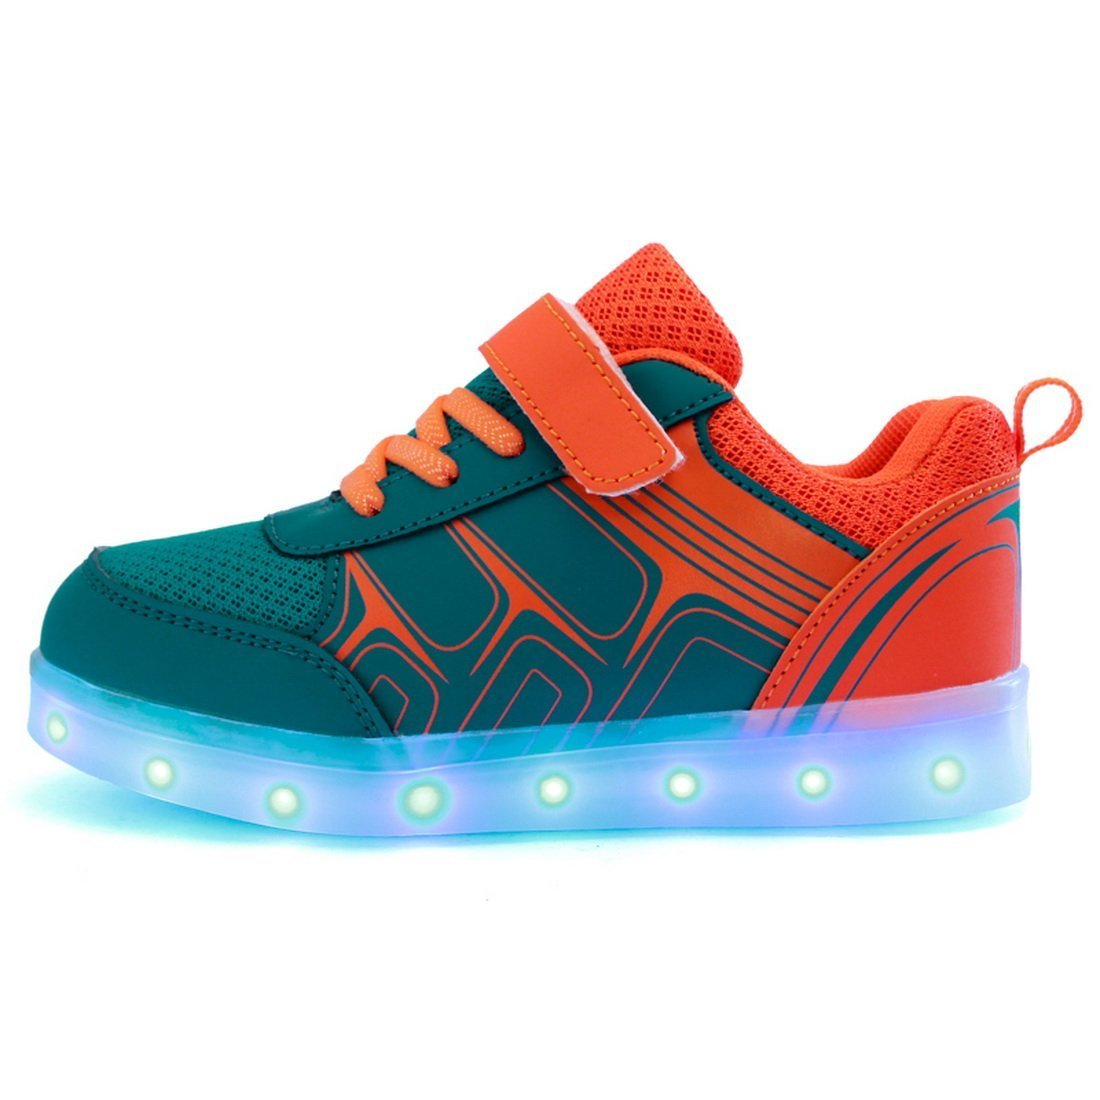 Men's/Women's sexphd Kids Boys Girls Lights USB Charger LED Lights Girls Light up Flames Sports Shoes Sneaker Easy to clean surface King of quantity Perfect processing WR24617 a85927